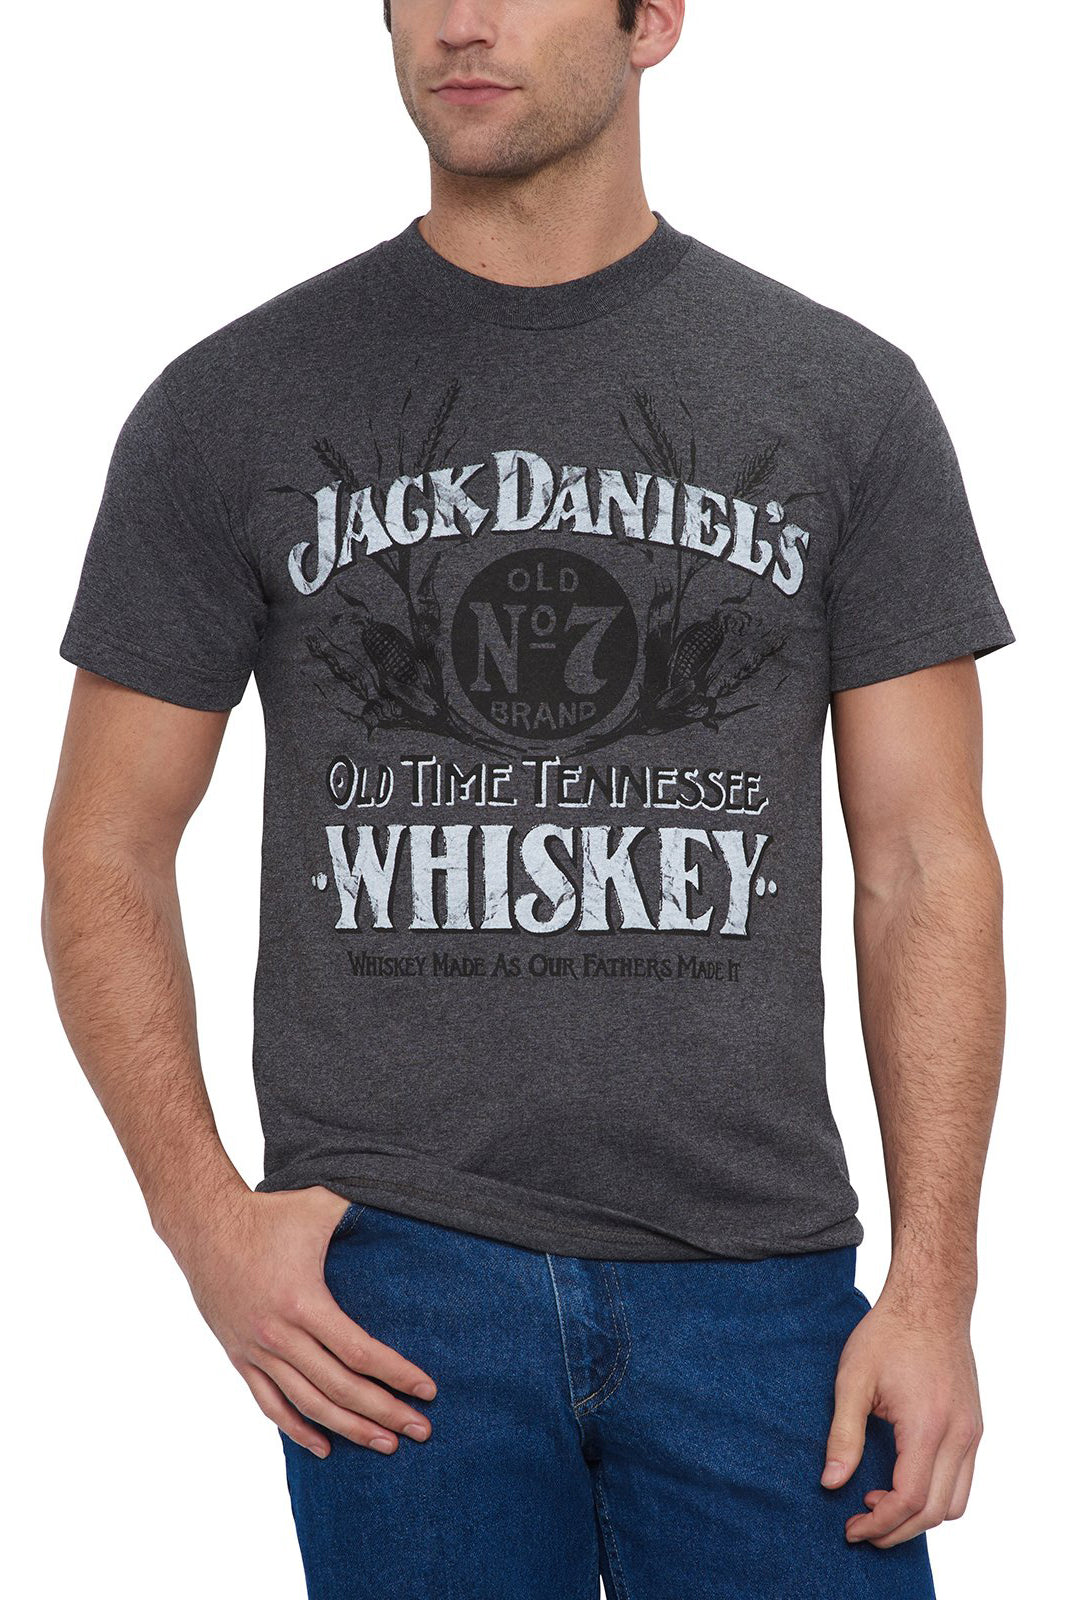 Men's Short Sleeve Jack Daniel's Old Time Tennessee Whiskey T-Shirt Charcoal | Ely Cattleman